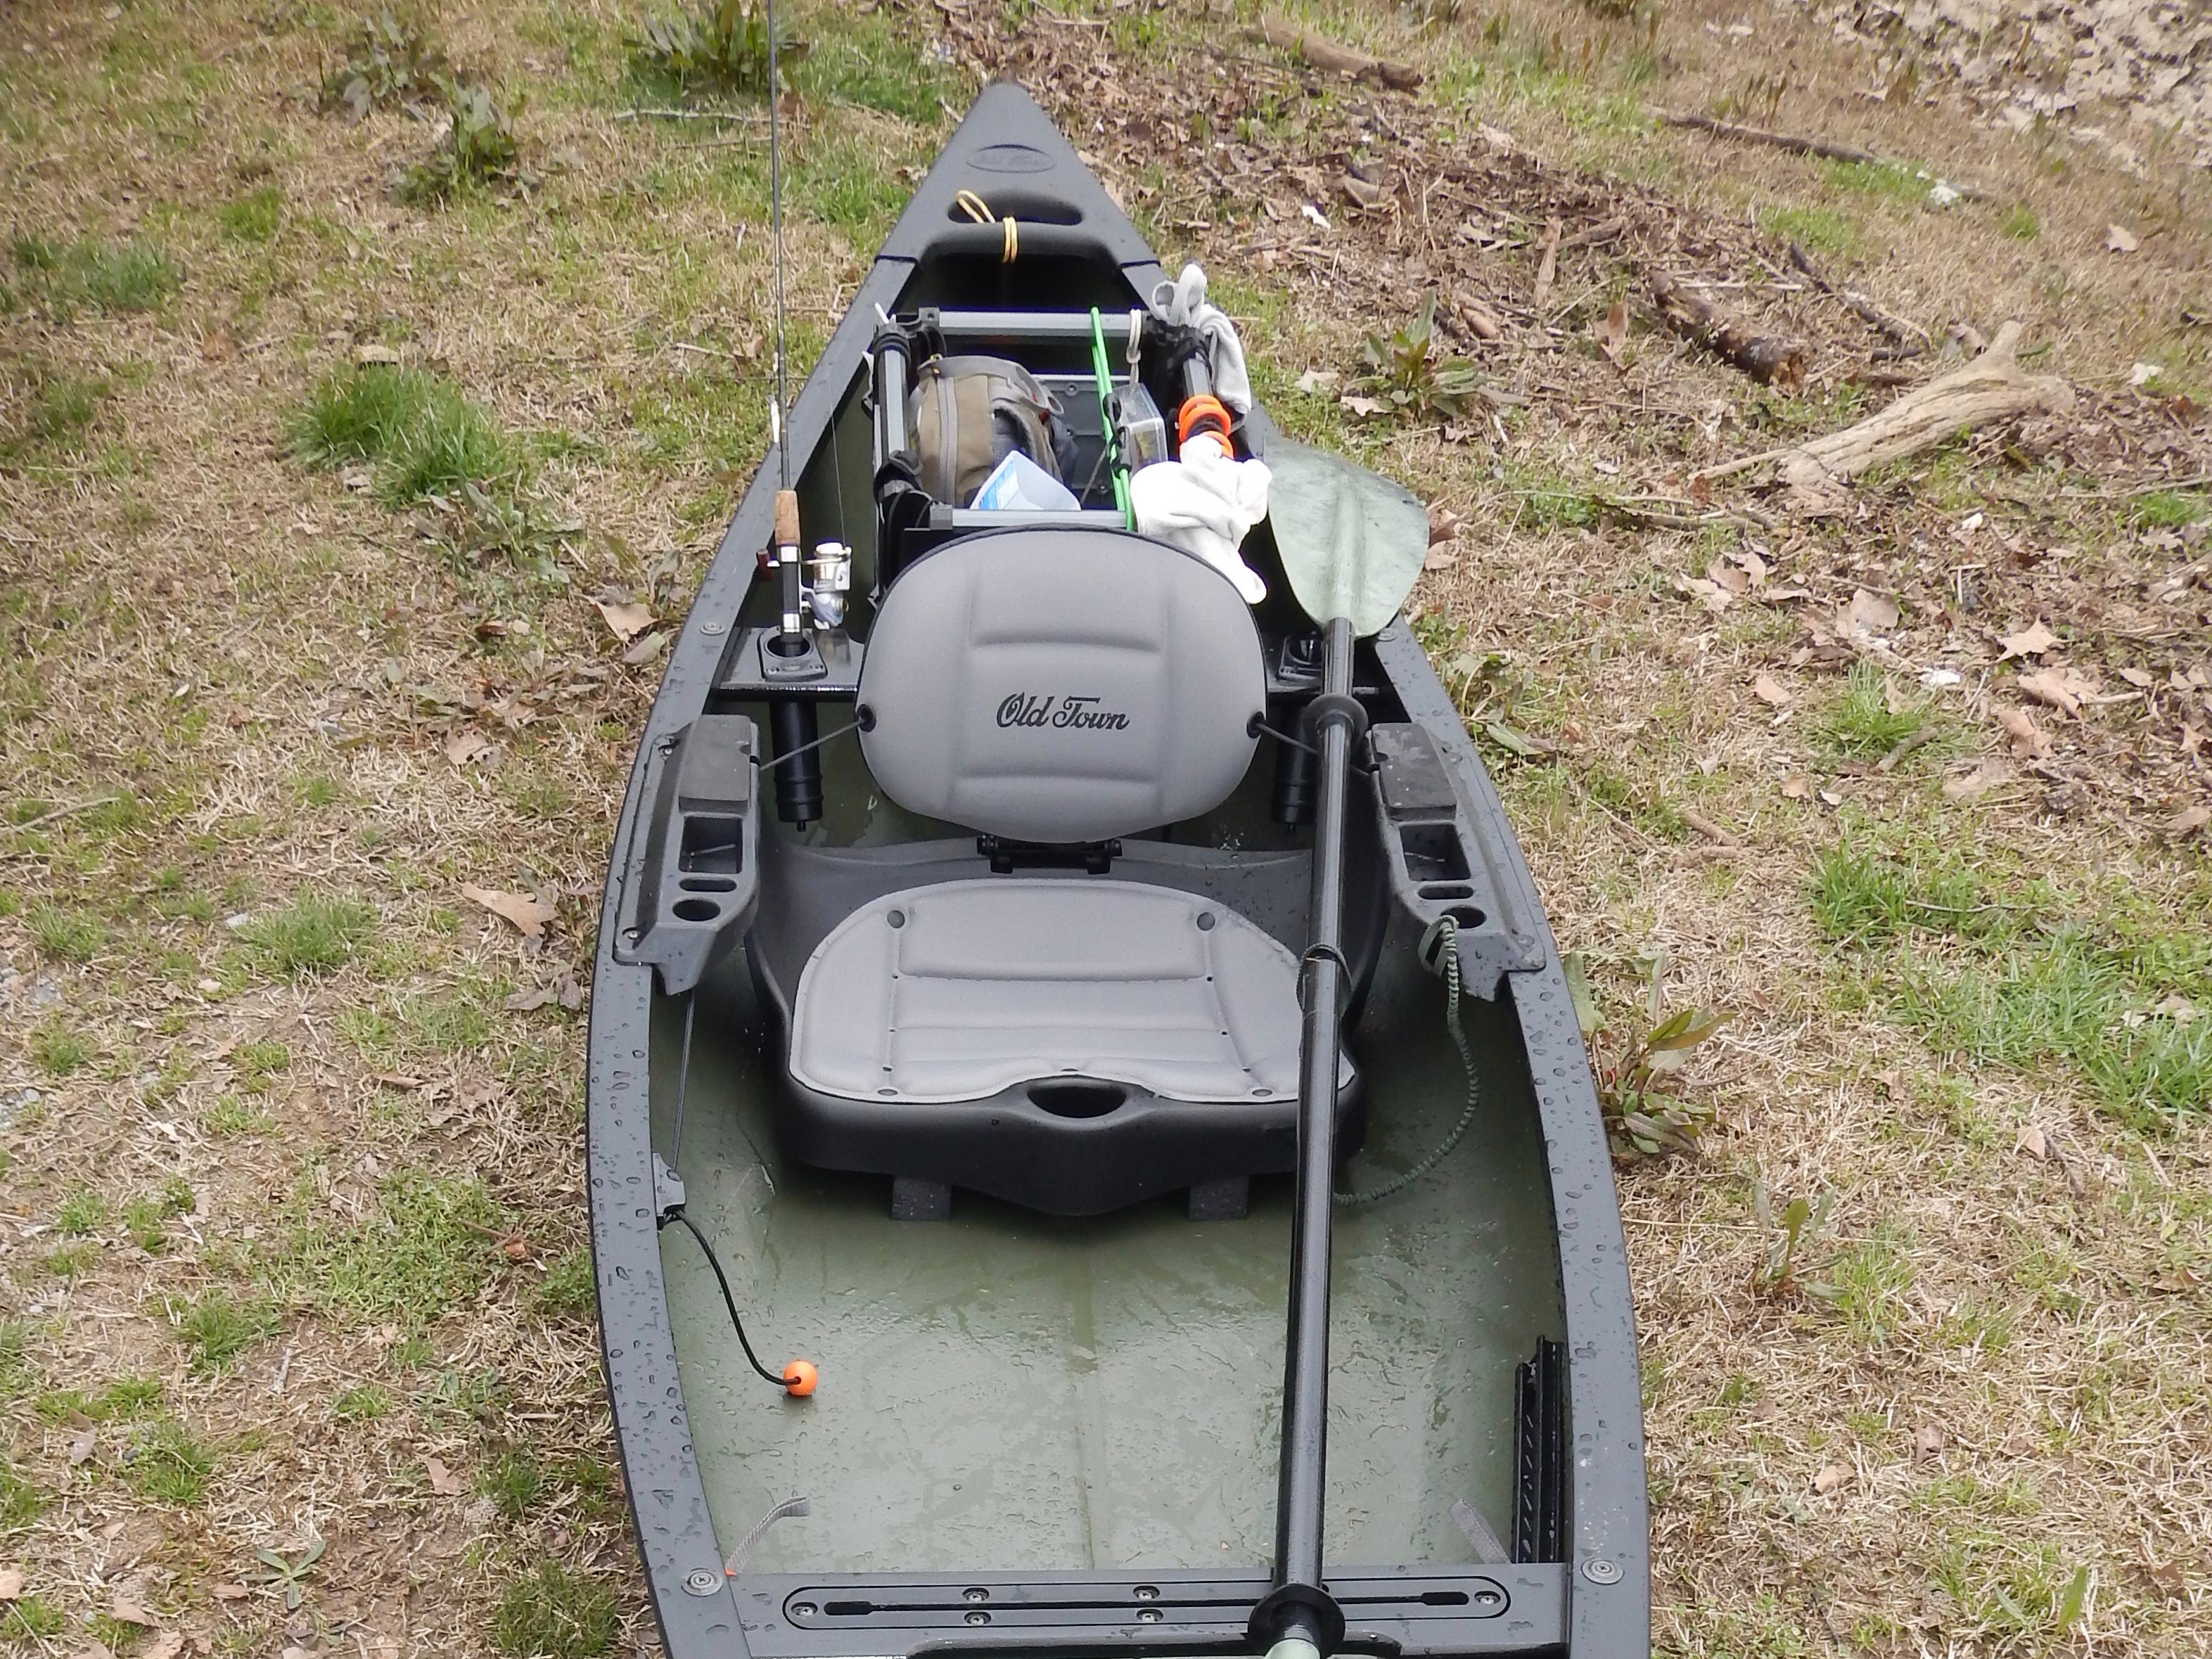 The kayak-style seat is nicely padded for daylong comfort. Easily adjustable foot braces aid with stability and help with back and leg comfort.